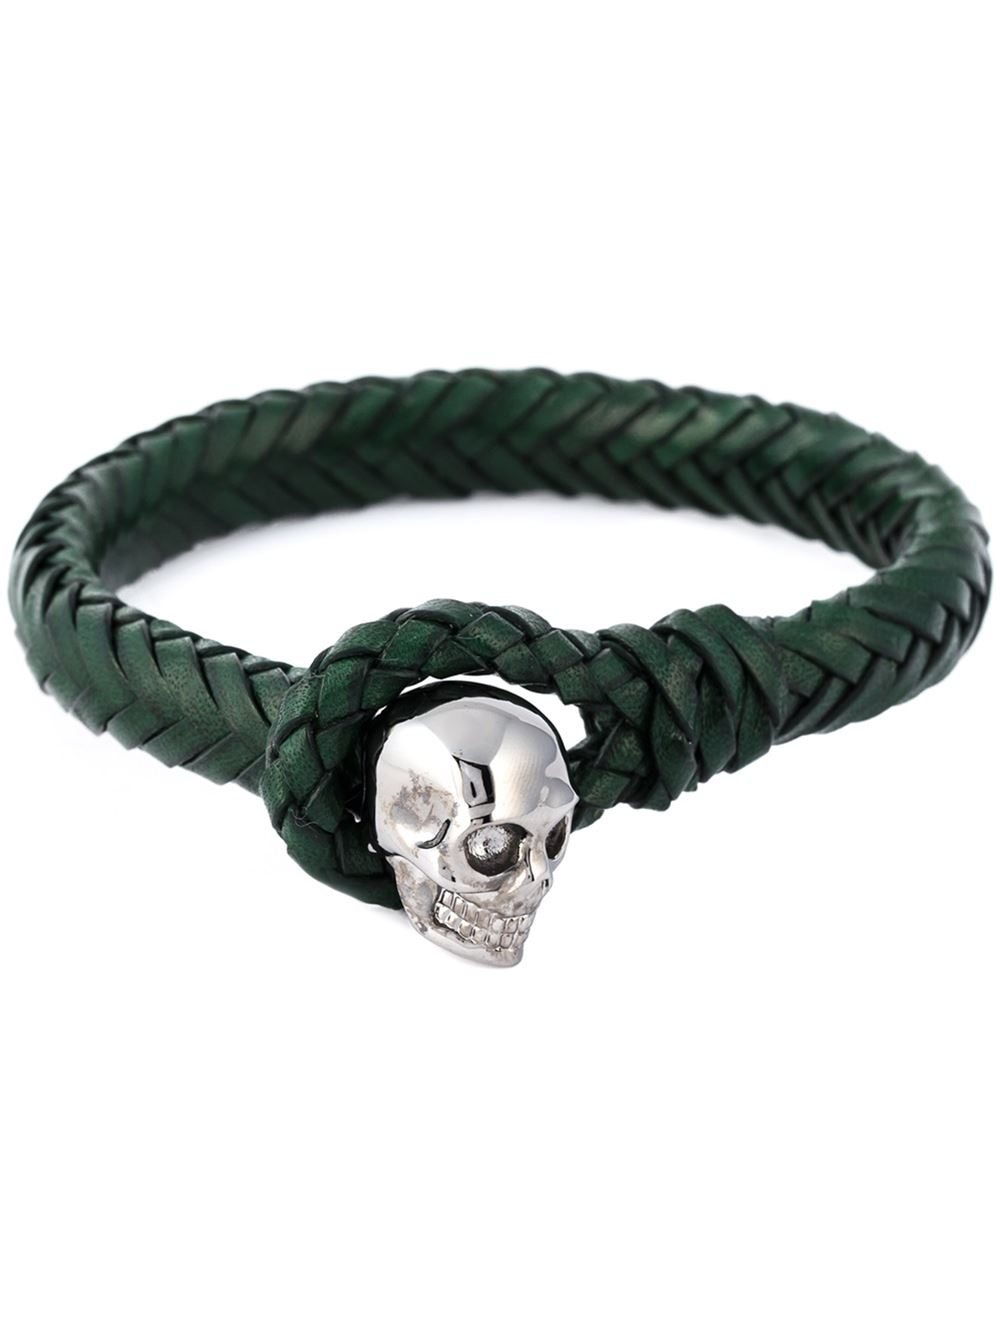 Alexander mcqueen Woven Skull Bracelet in Green for Men